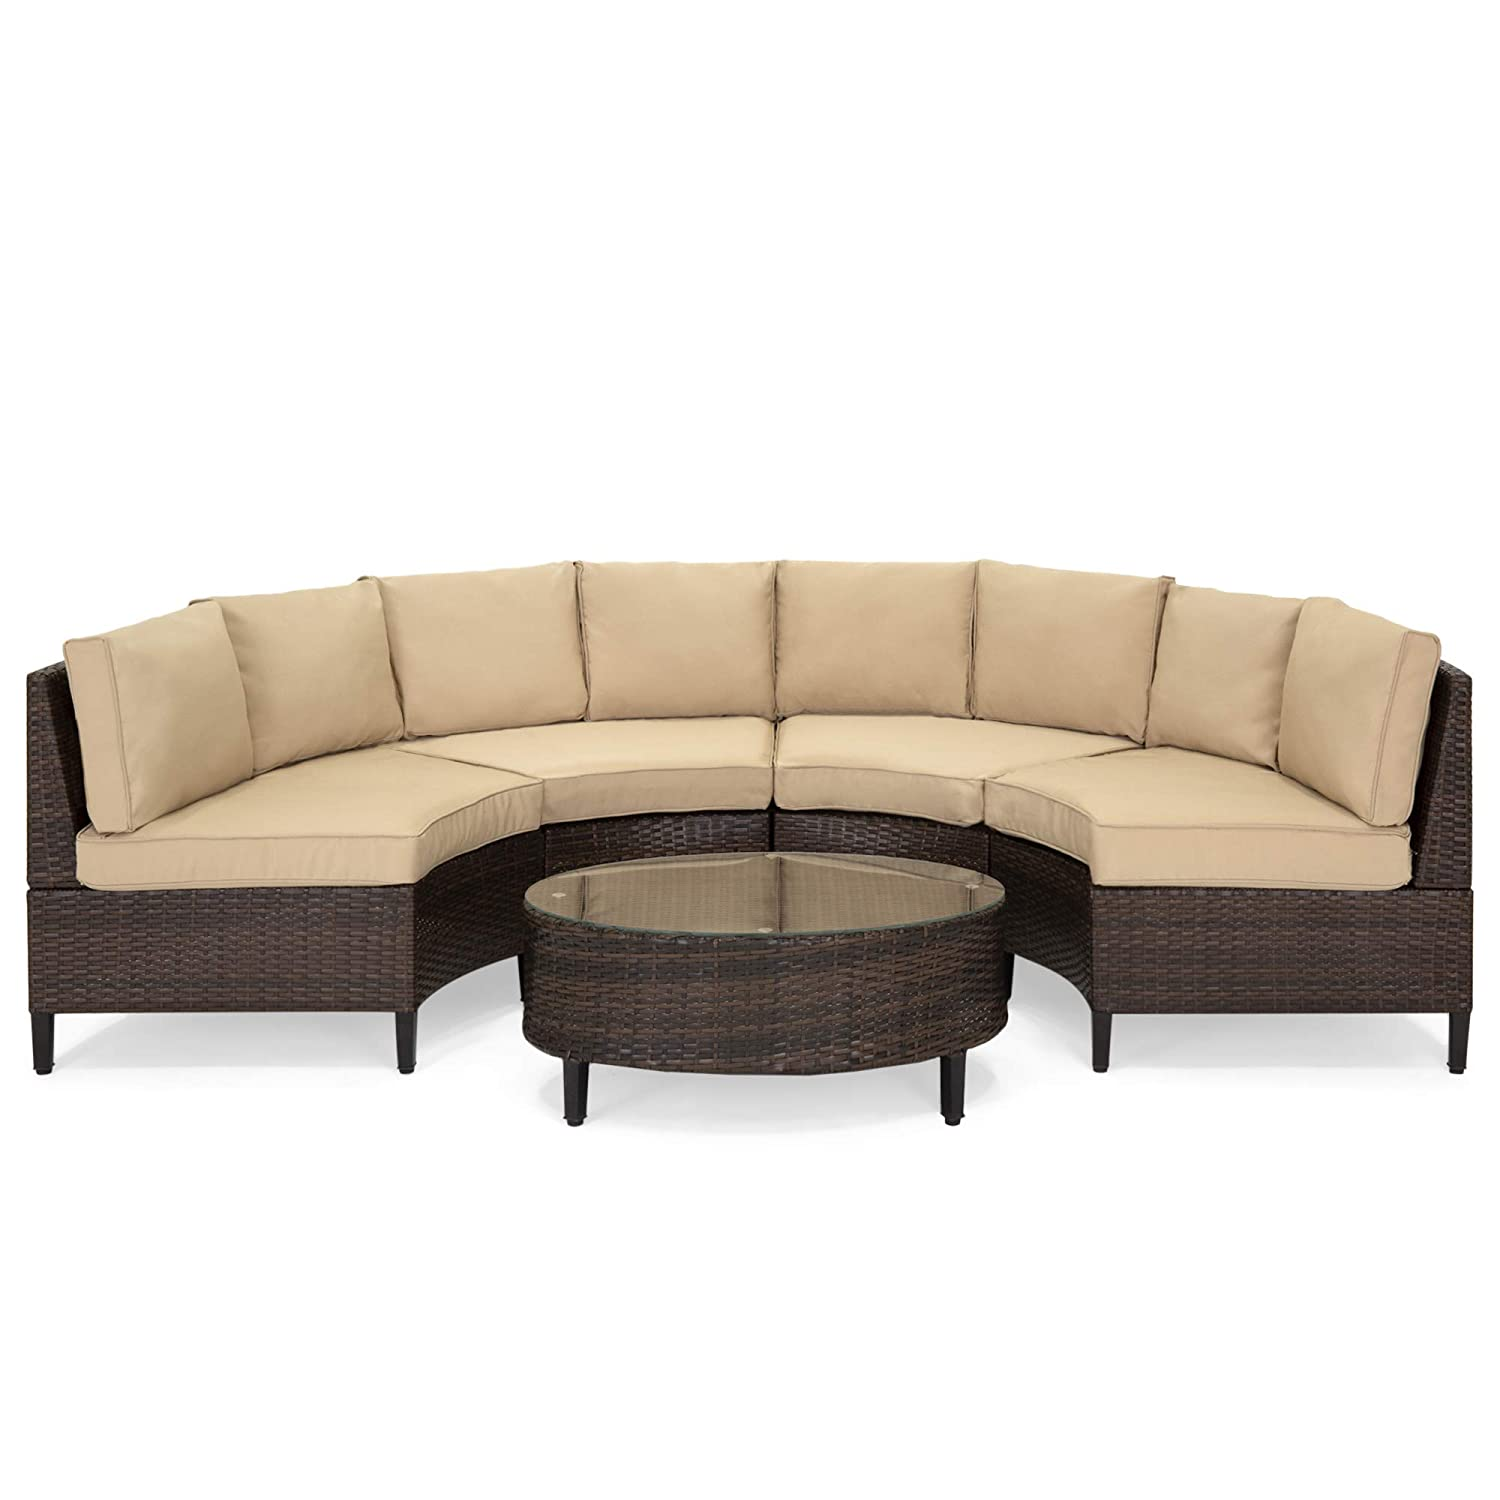 Best Choice Products 5-Piece Modern Outdoor Patio Semi-Circle Wicker  Sectional Sofa Set w/ 4 Seats, Coffee Table - Brown